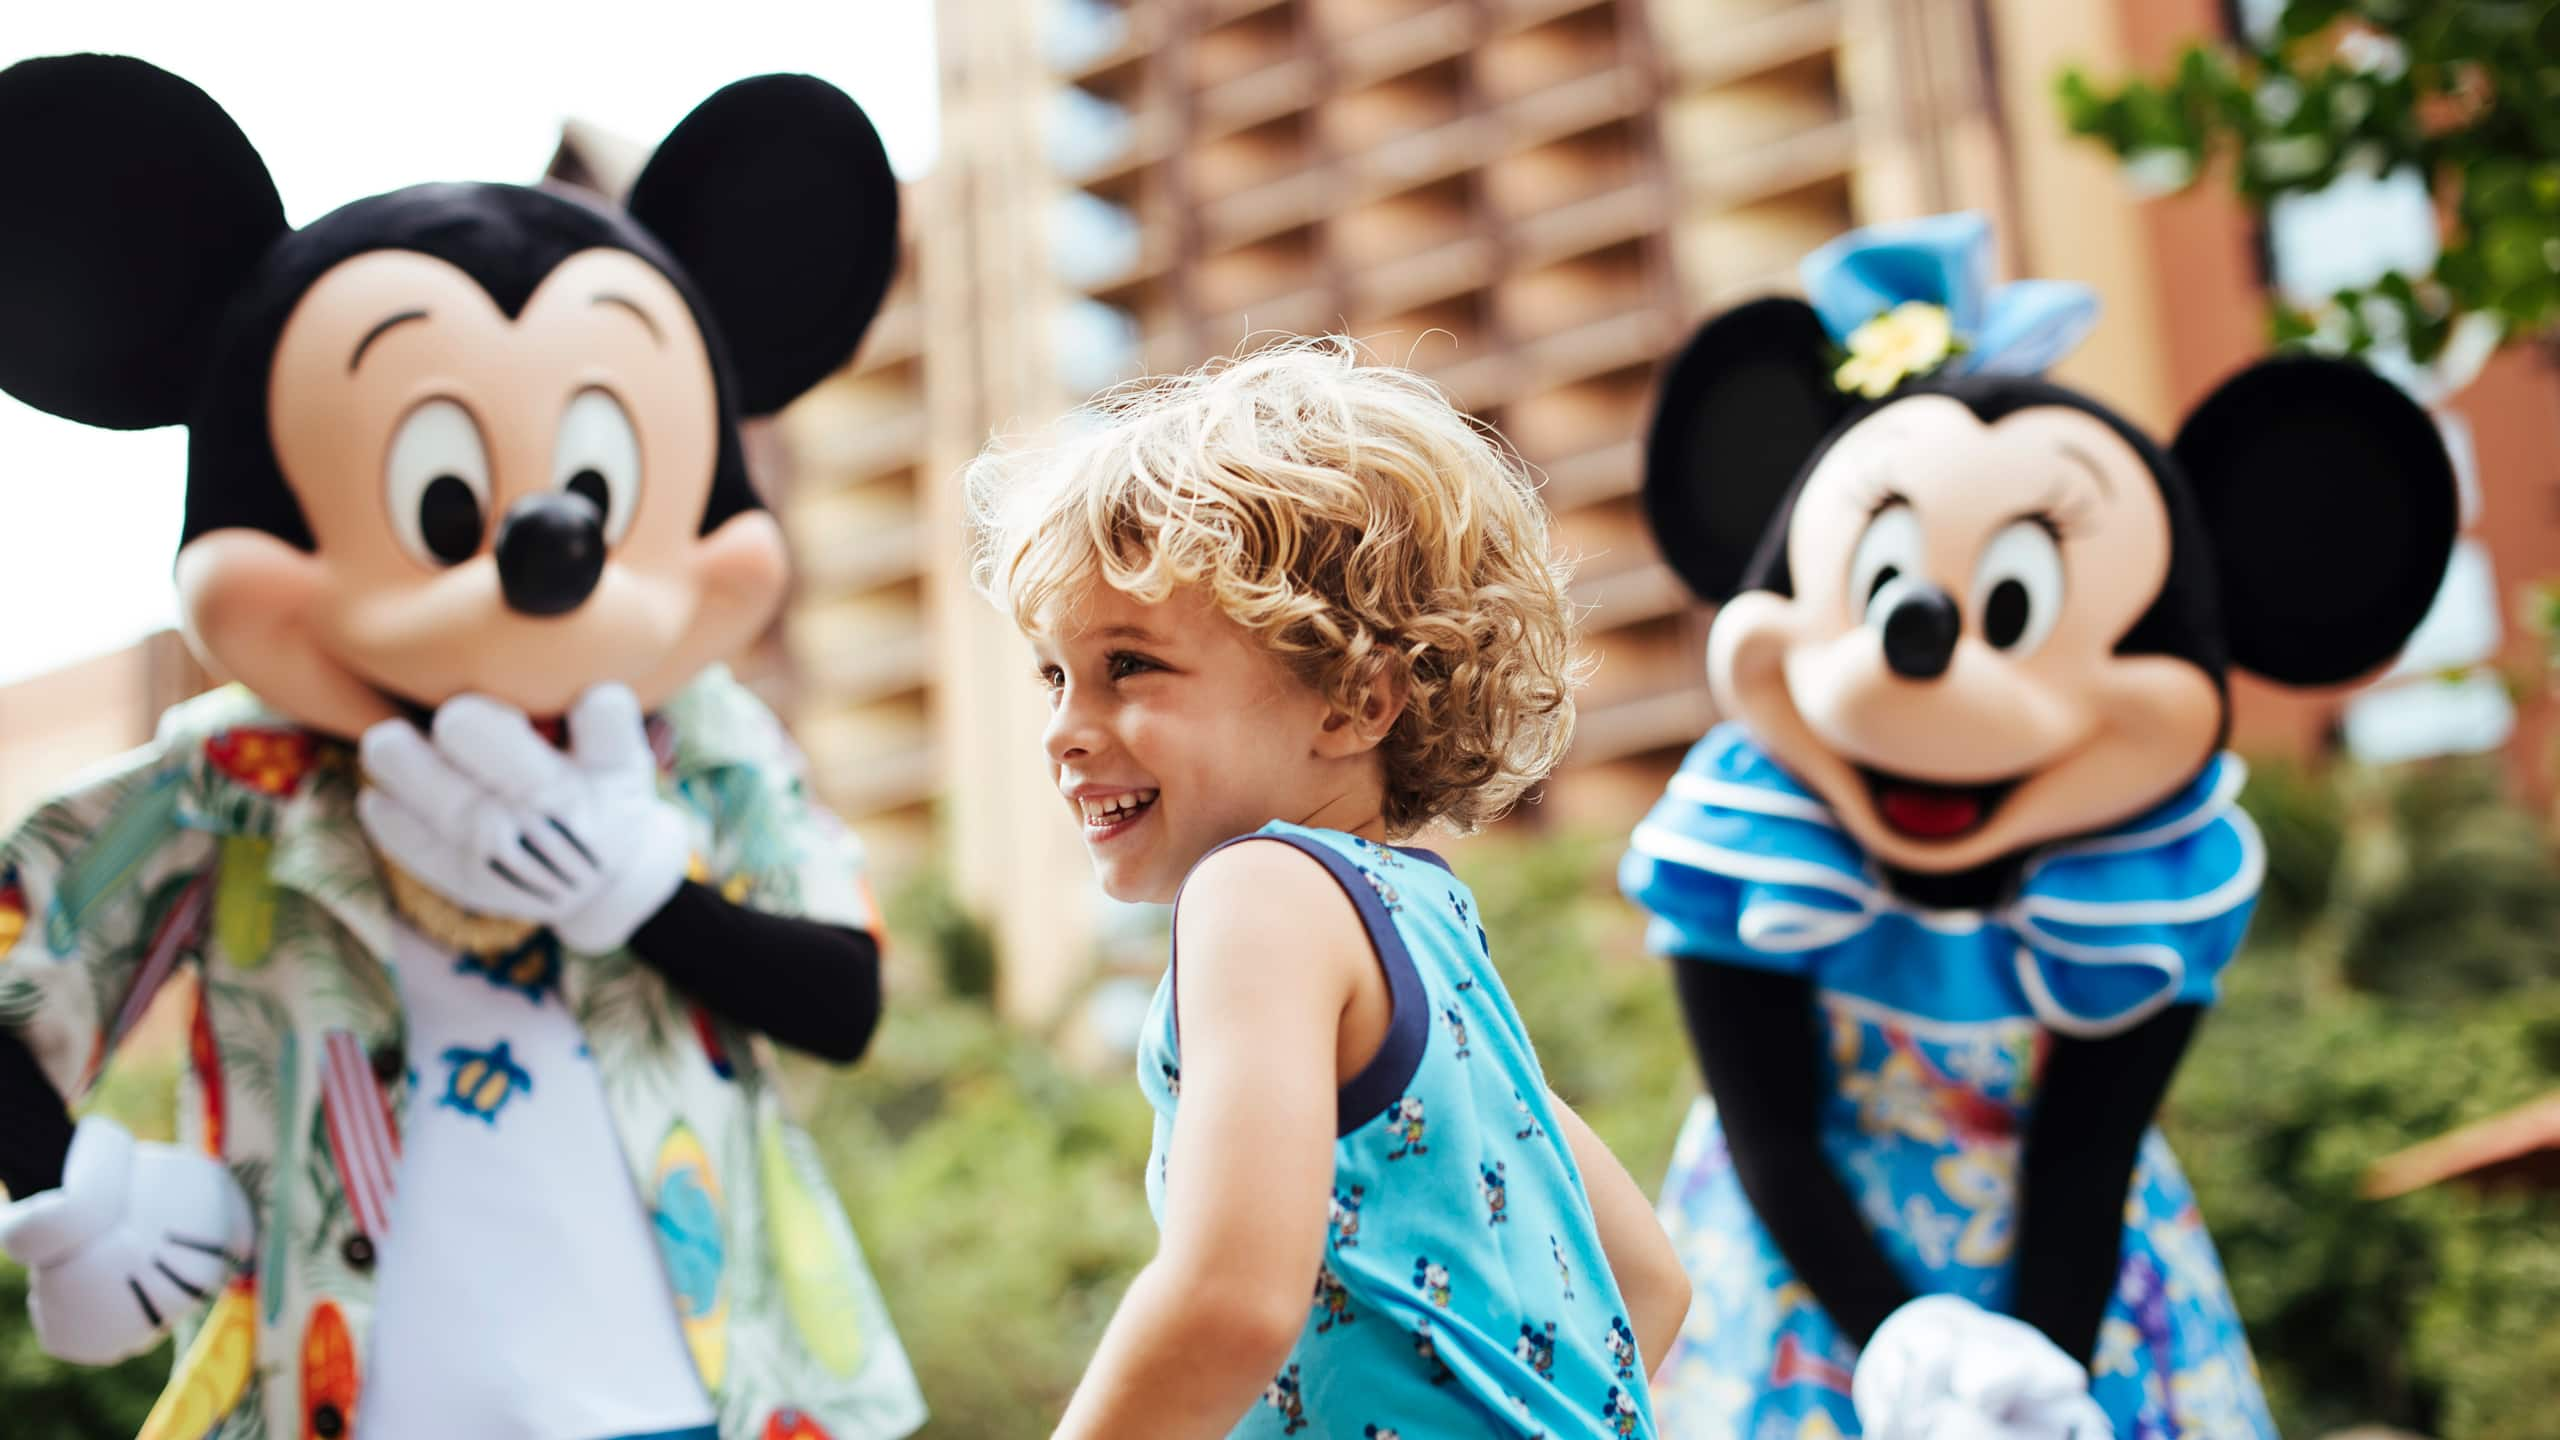 A young child smiling while standing near Mickey Mouse and Minnie Mouse